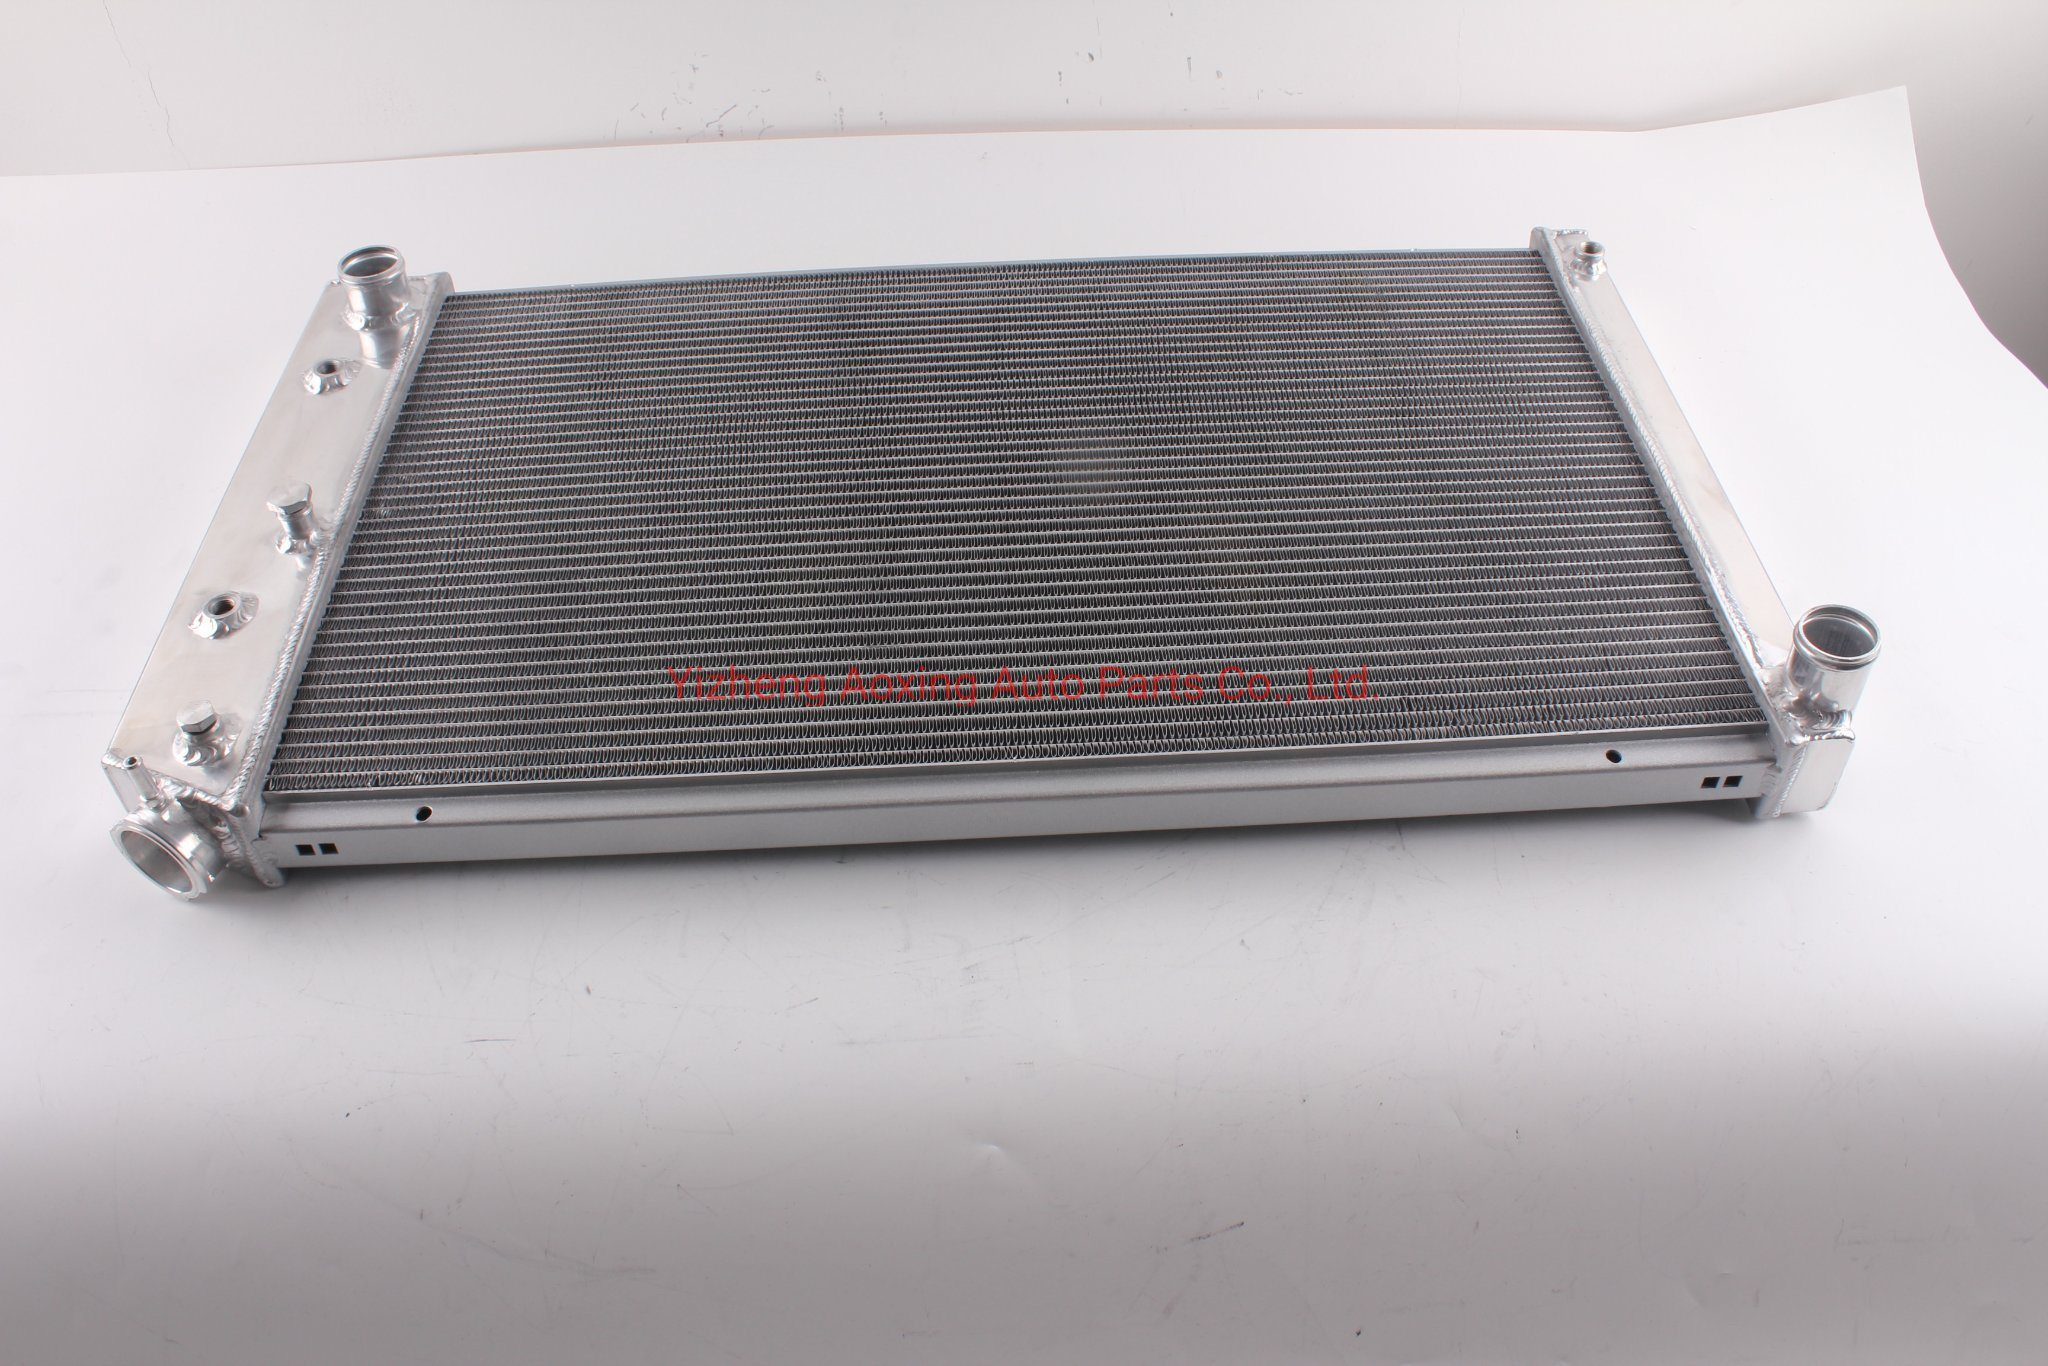 Chevy aluminum radiator 3 Rows 1967-1980 68 69 70 71 72 GM